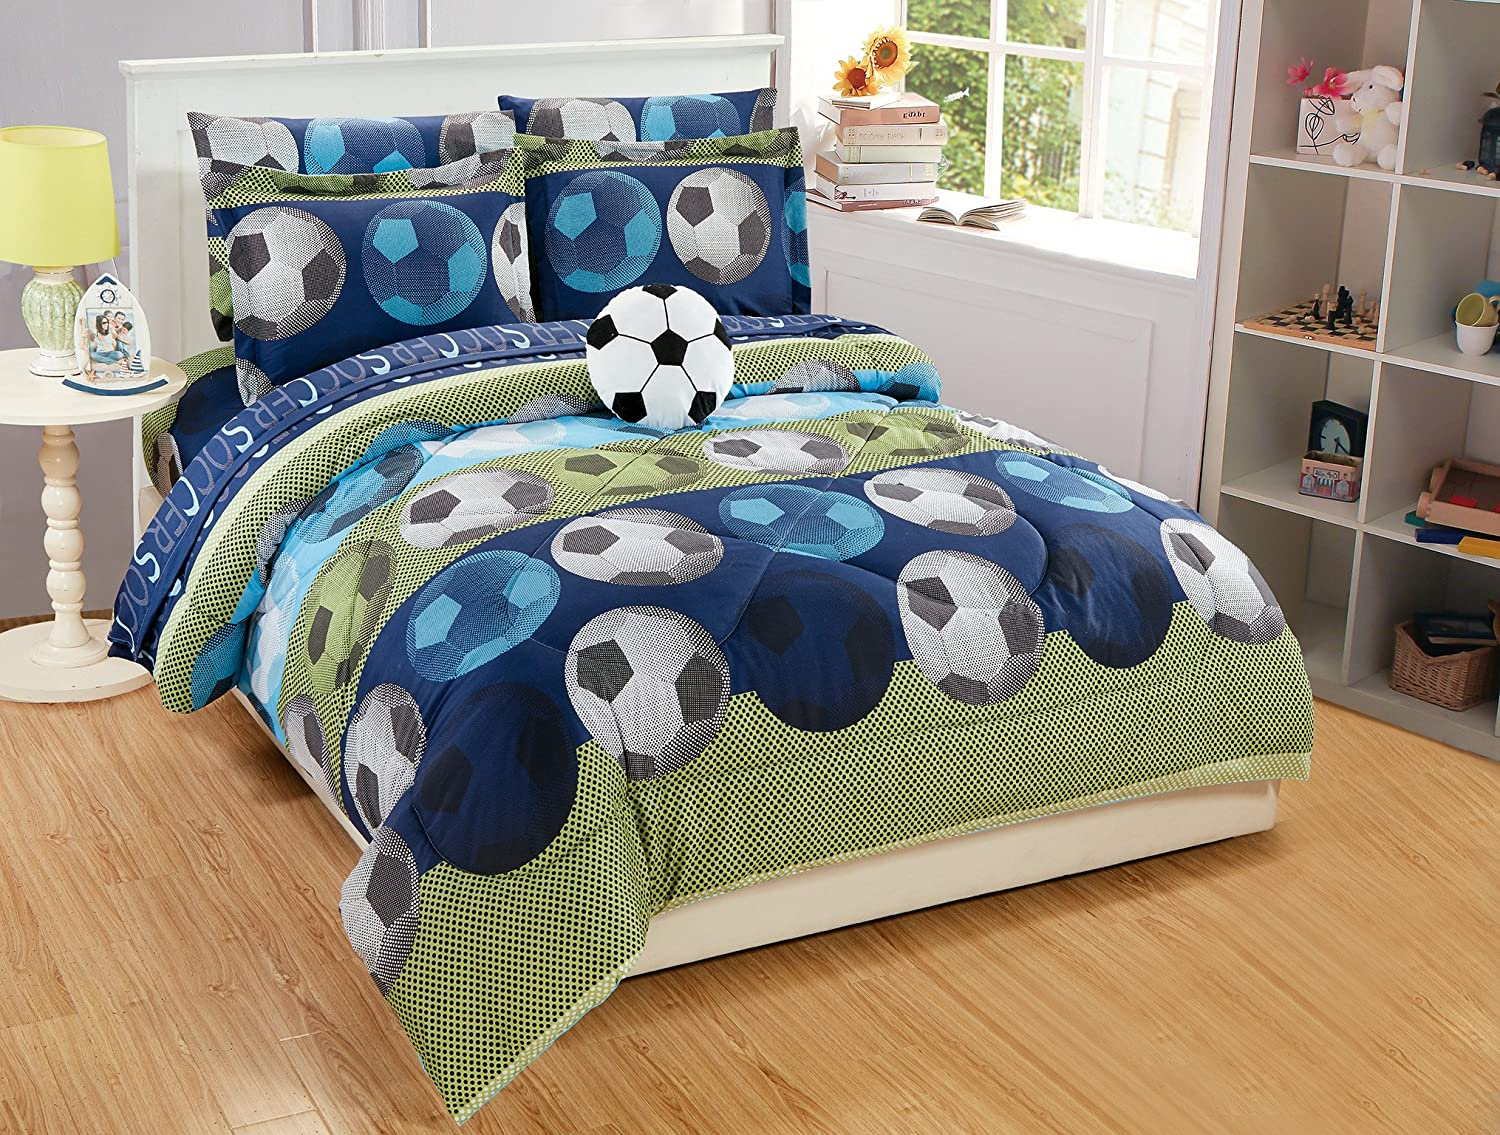 Twin Size 6pc Comforter Set for Boys/Teens Soccer Green Blue Black White New